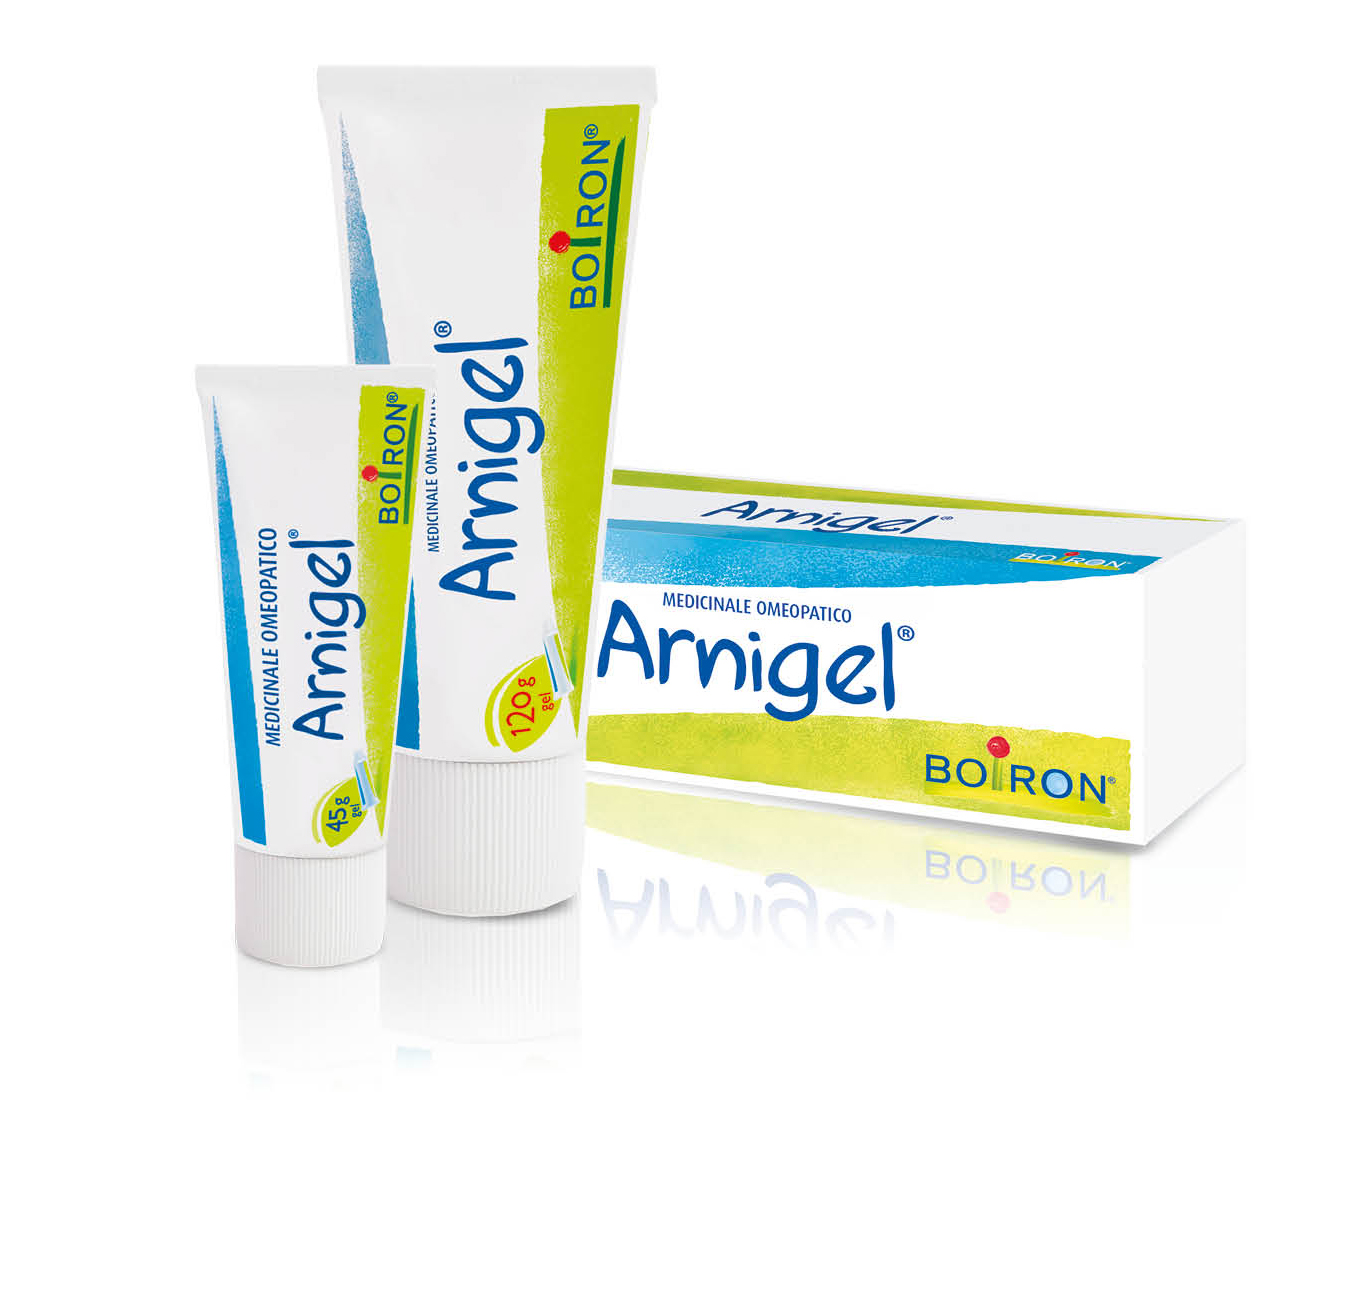 ARNIGEL*7% GEL TUBO 120G - Farmacia 33